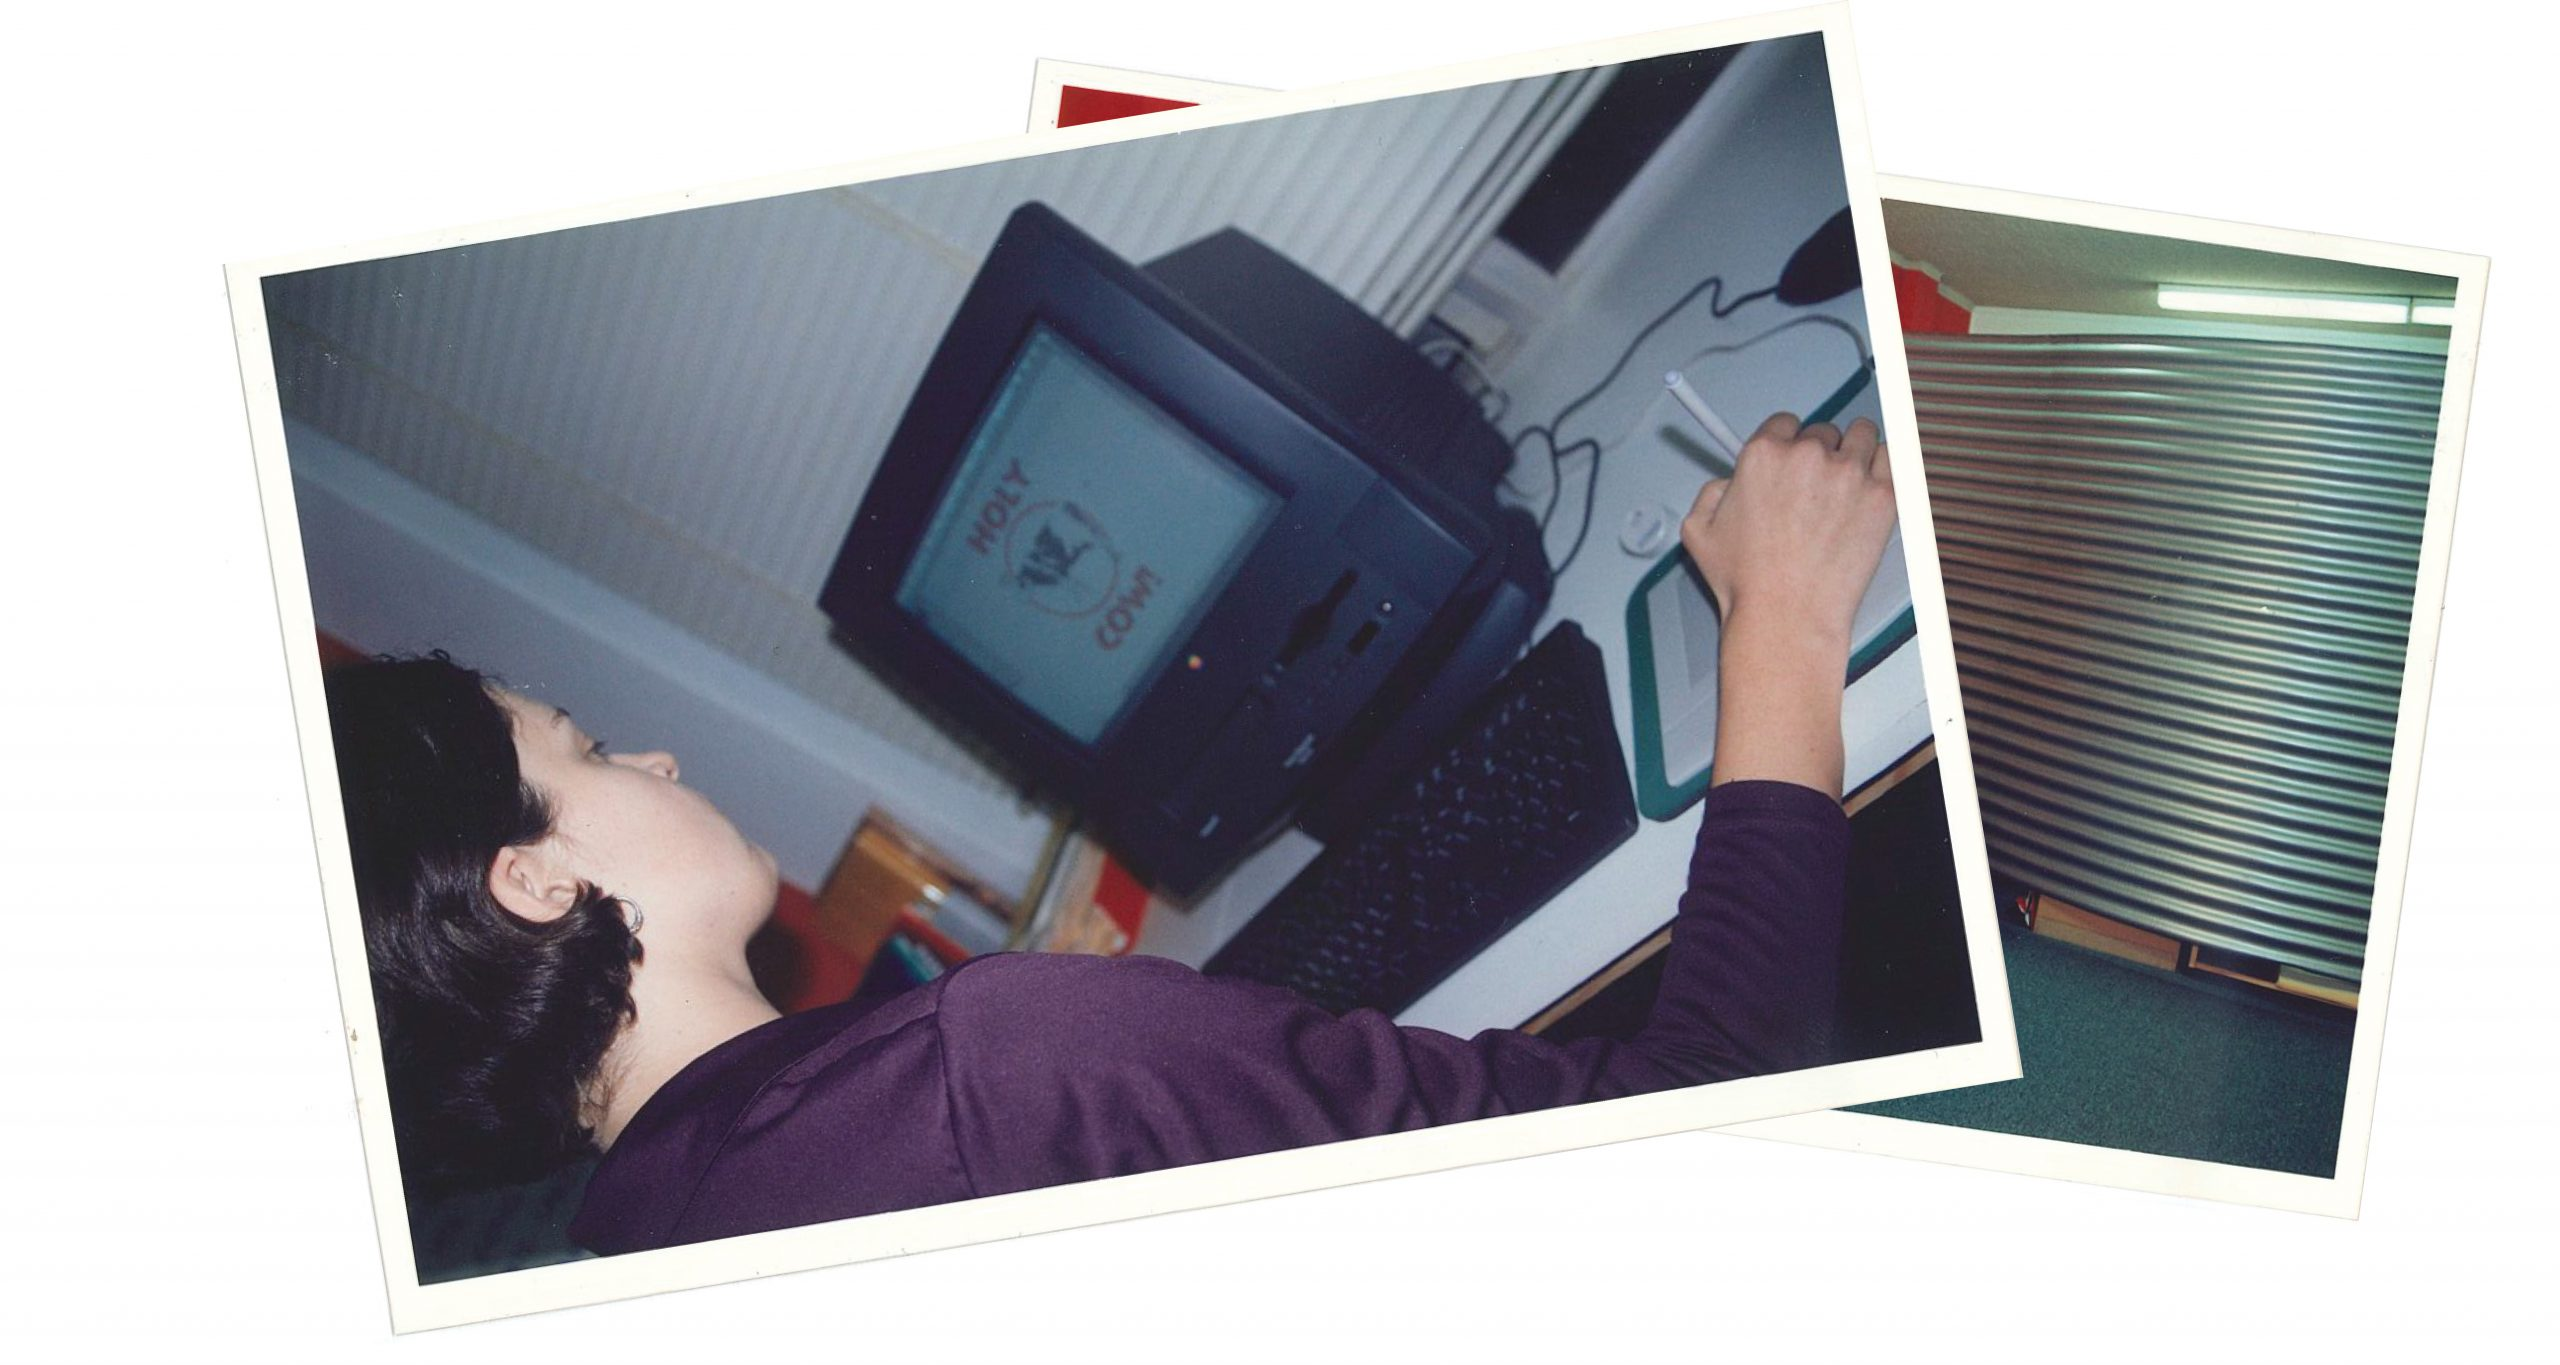 Our multi-talented Creative Director, Emma Gray in 1998 with her brand new, much-admired black Apple Power Mac 5500 displaying our first logo